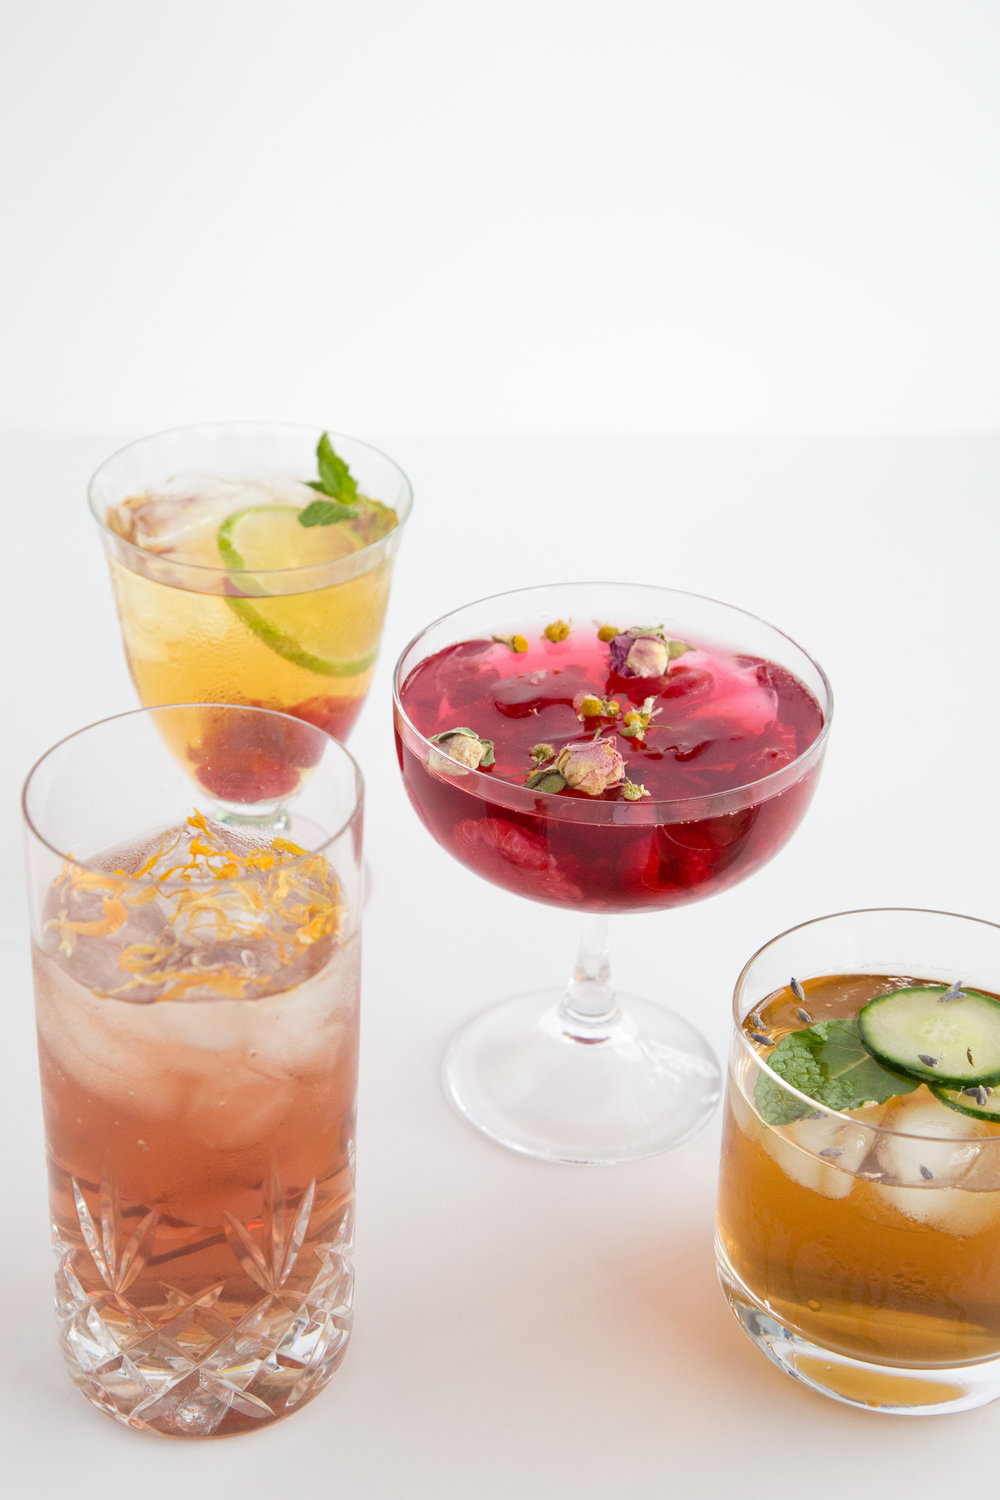 Our favorite Iced Teas